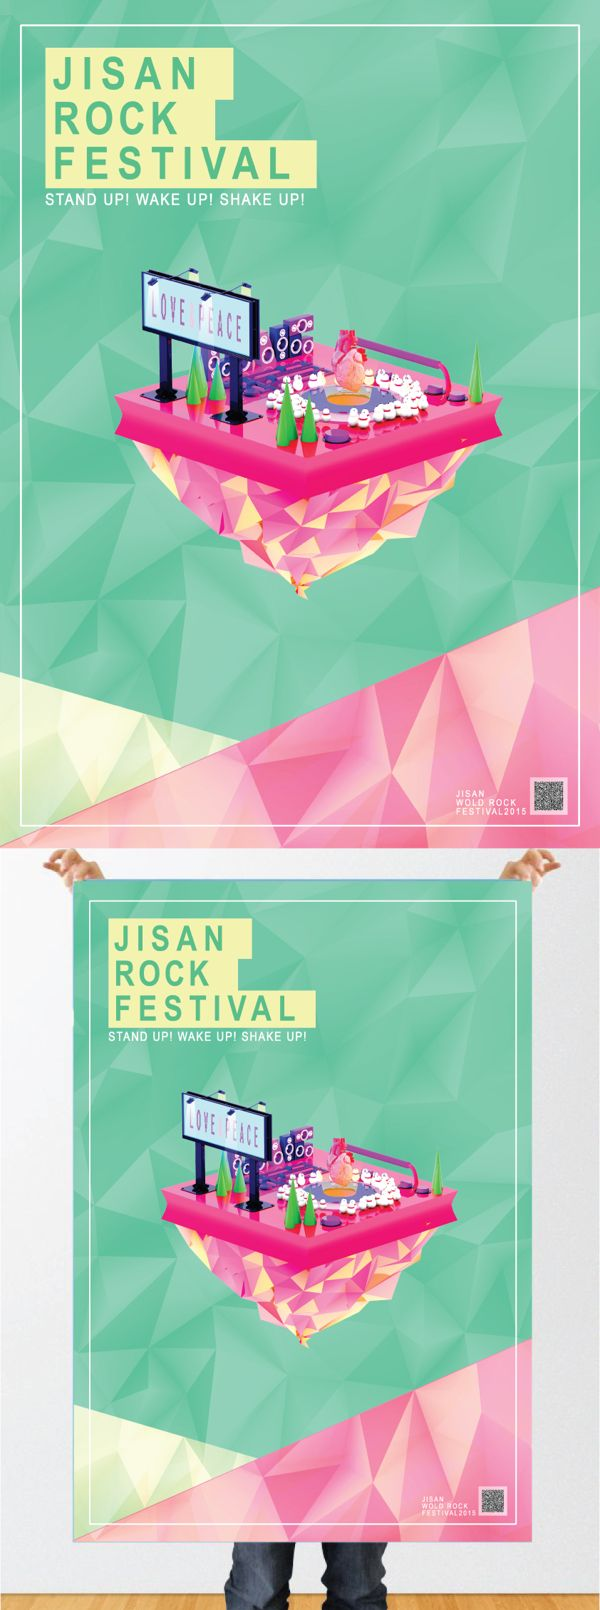 jisanrockfestival by jung jiyung, via Behance